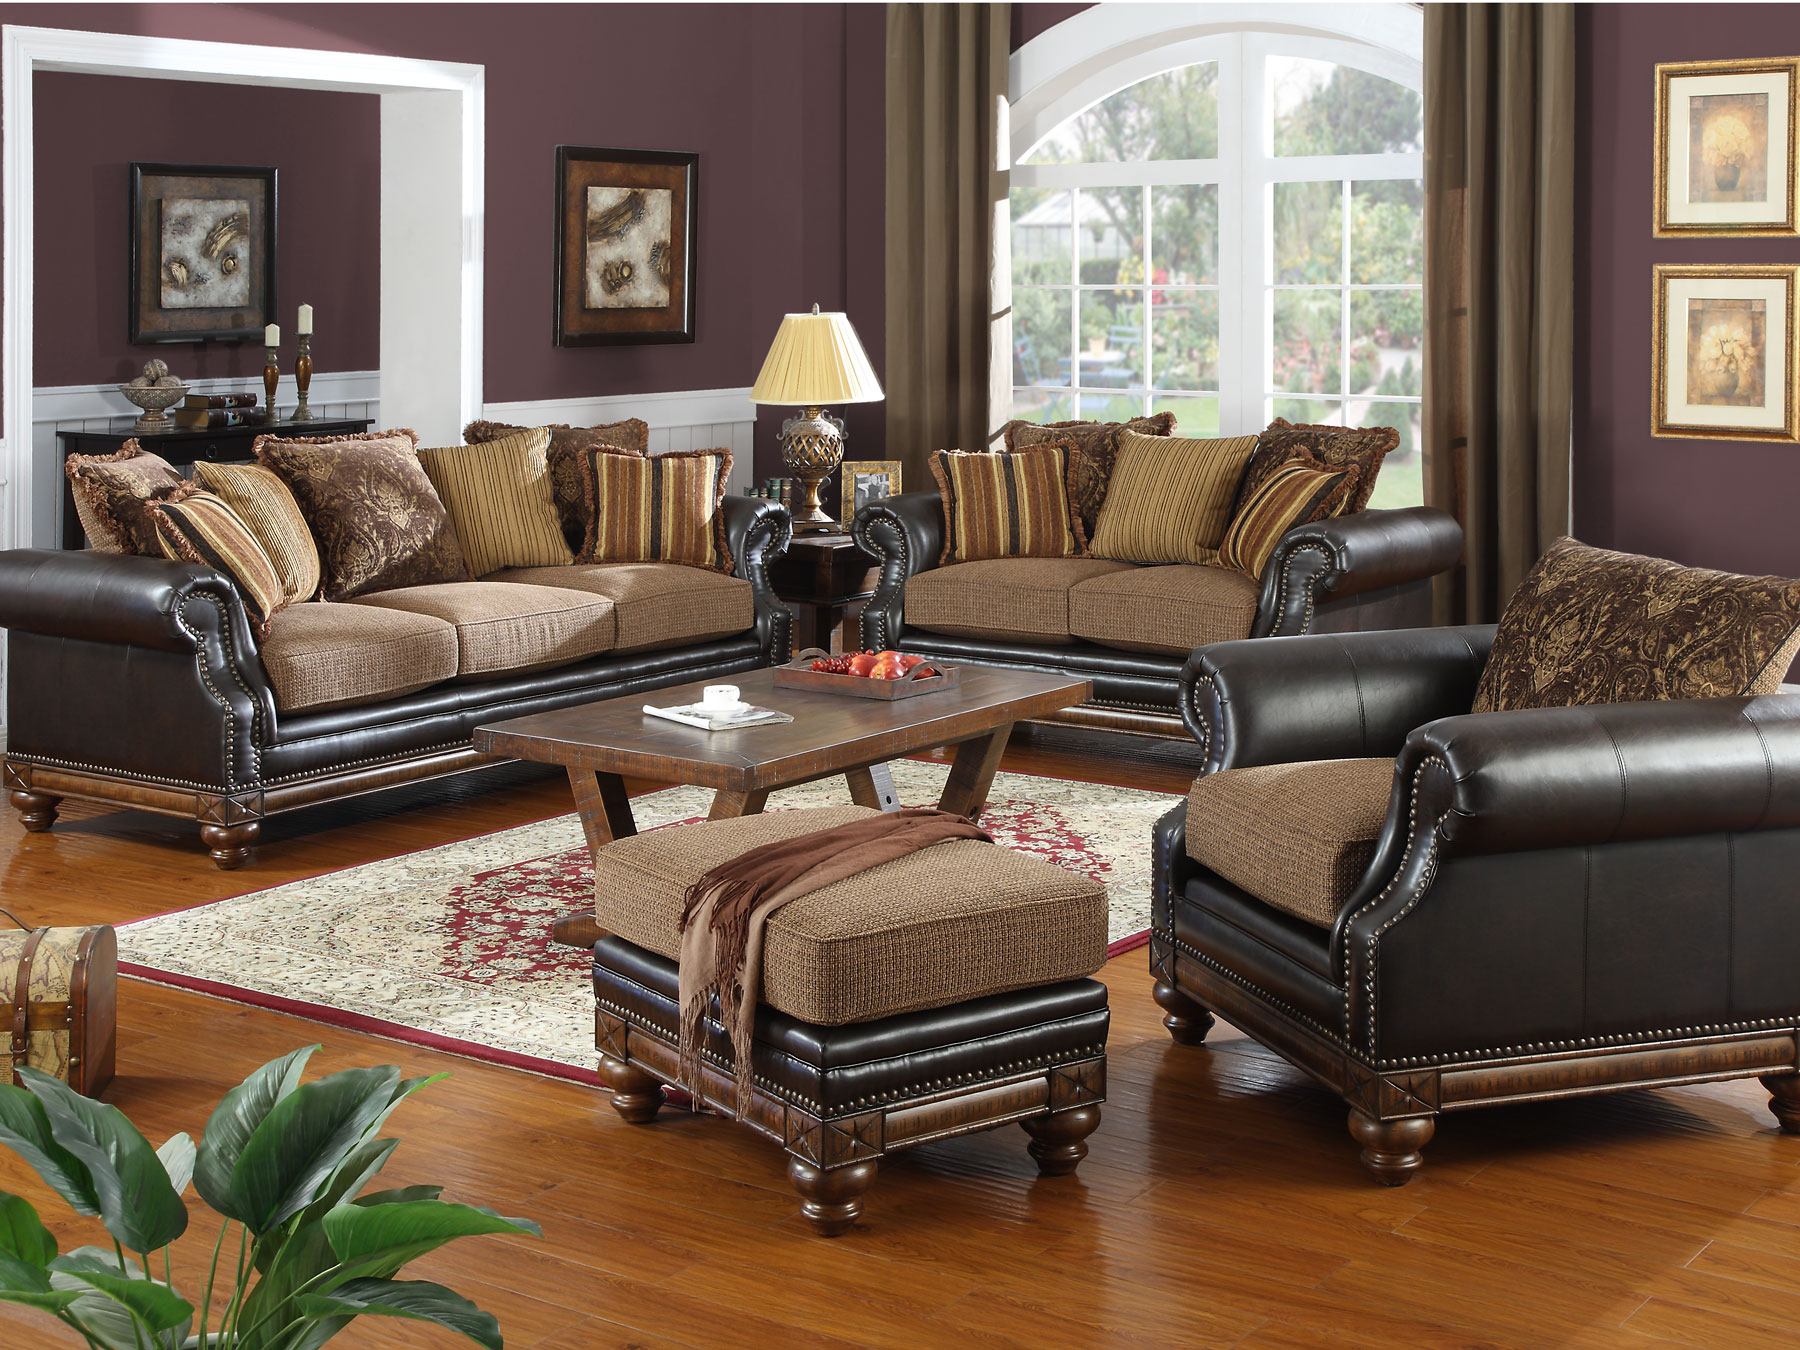 Living Room Sets Furniture 25 facts to know about ashley furniture living room sets - hawk haven